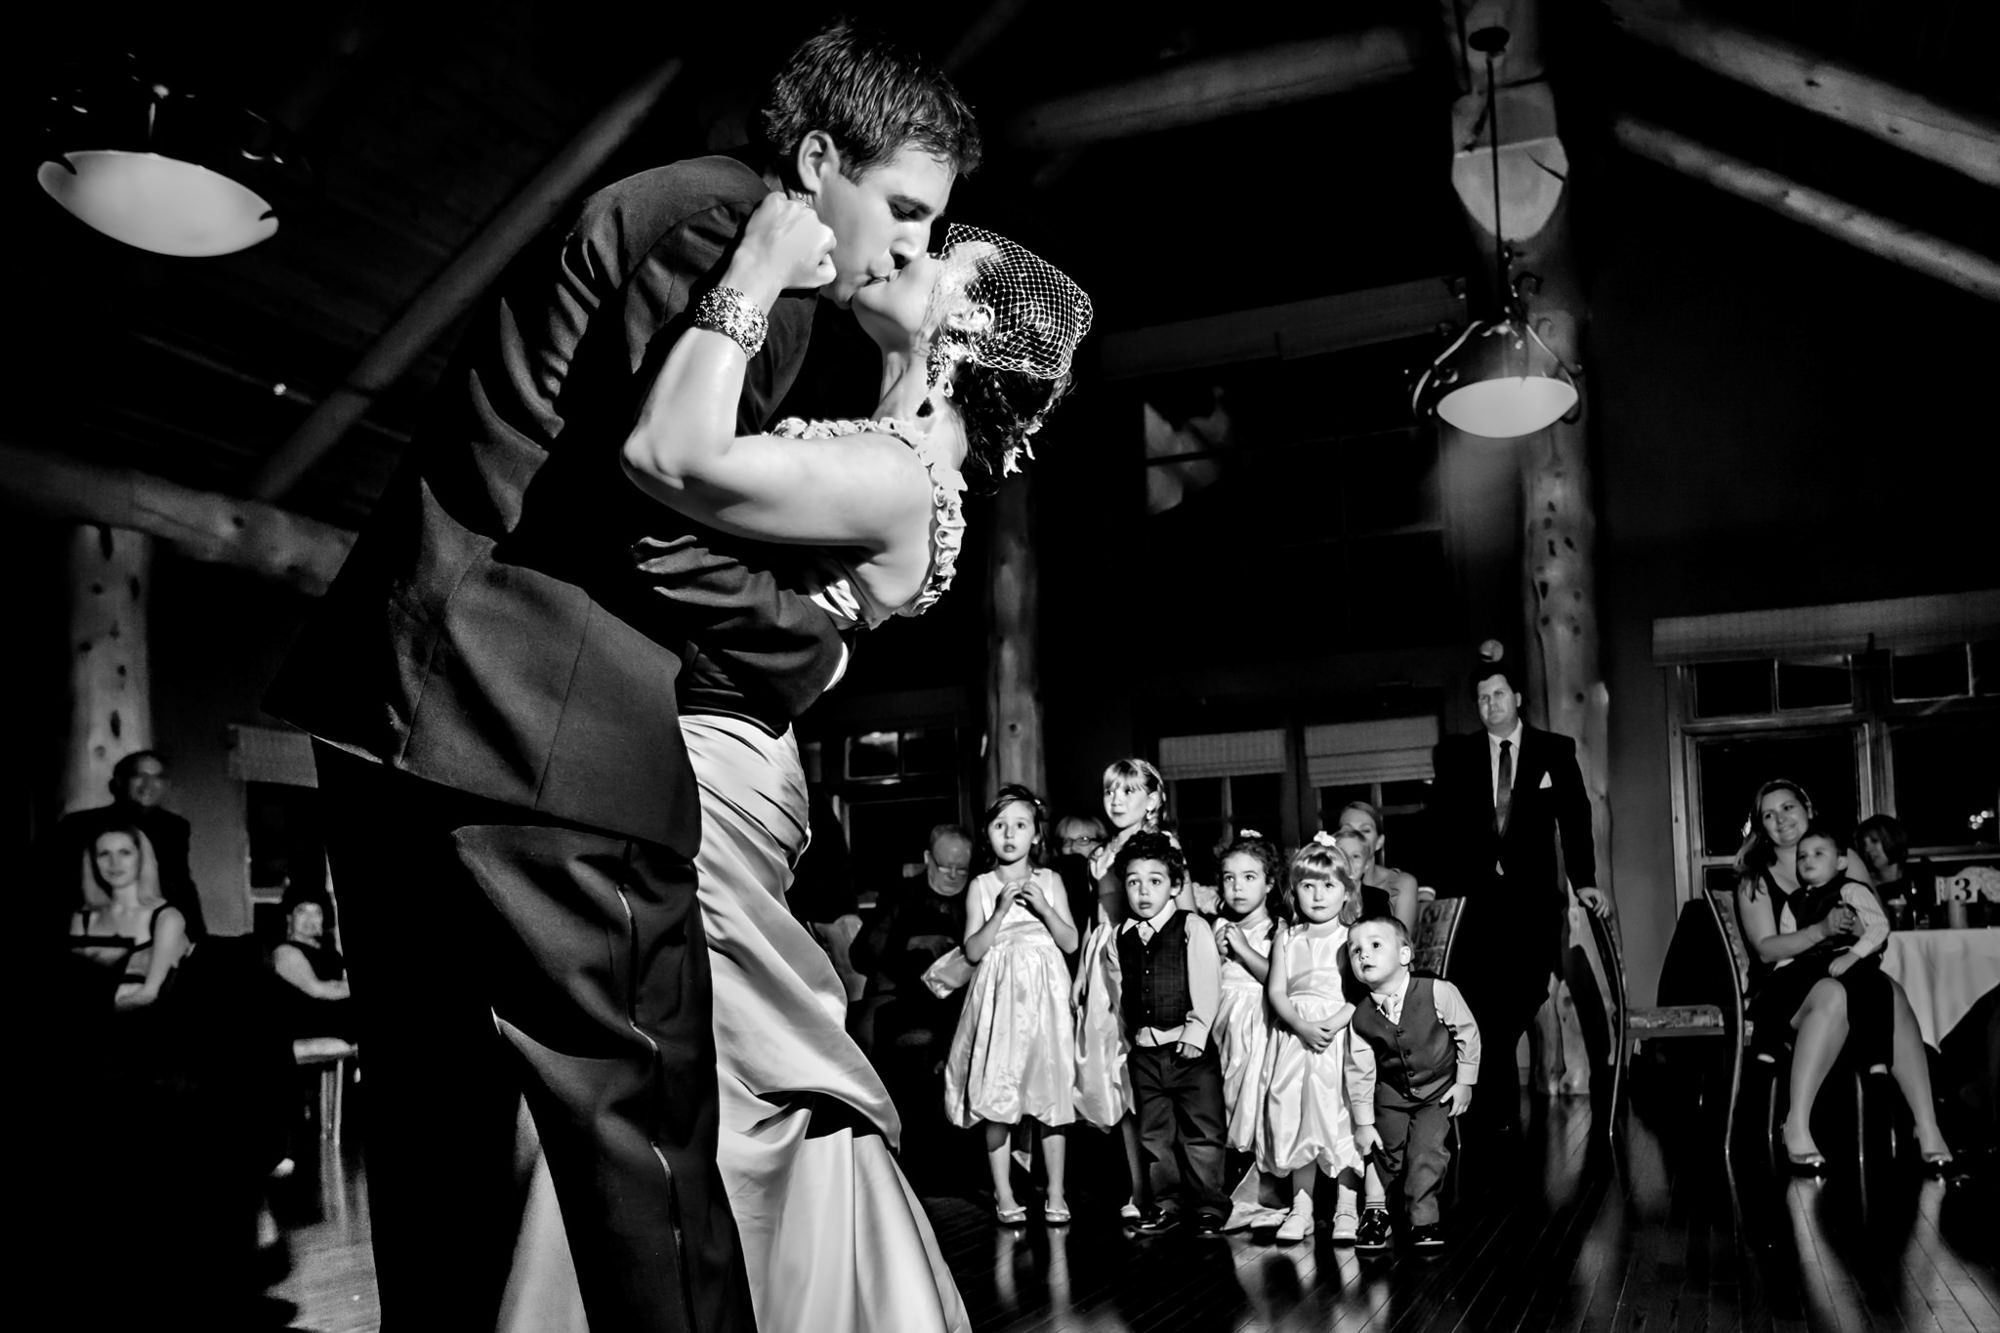 Kids look on while couple kisses on dance floor - photo by Two Mann Studios